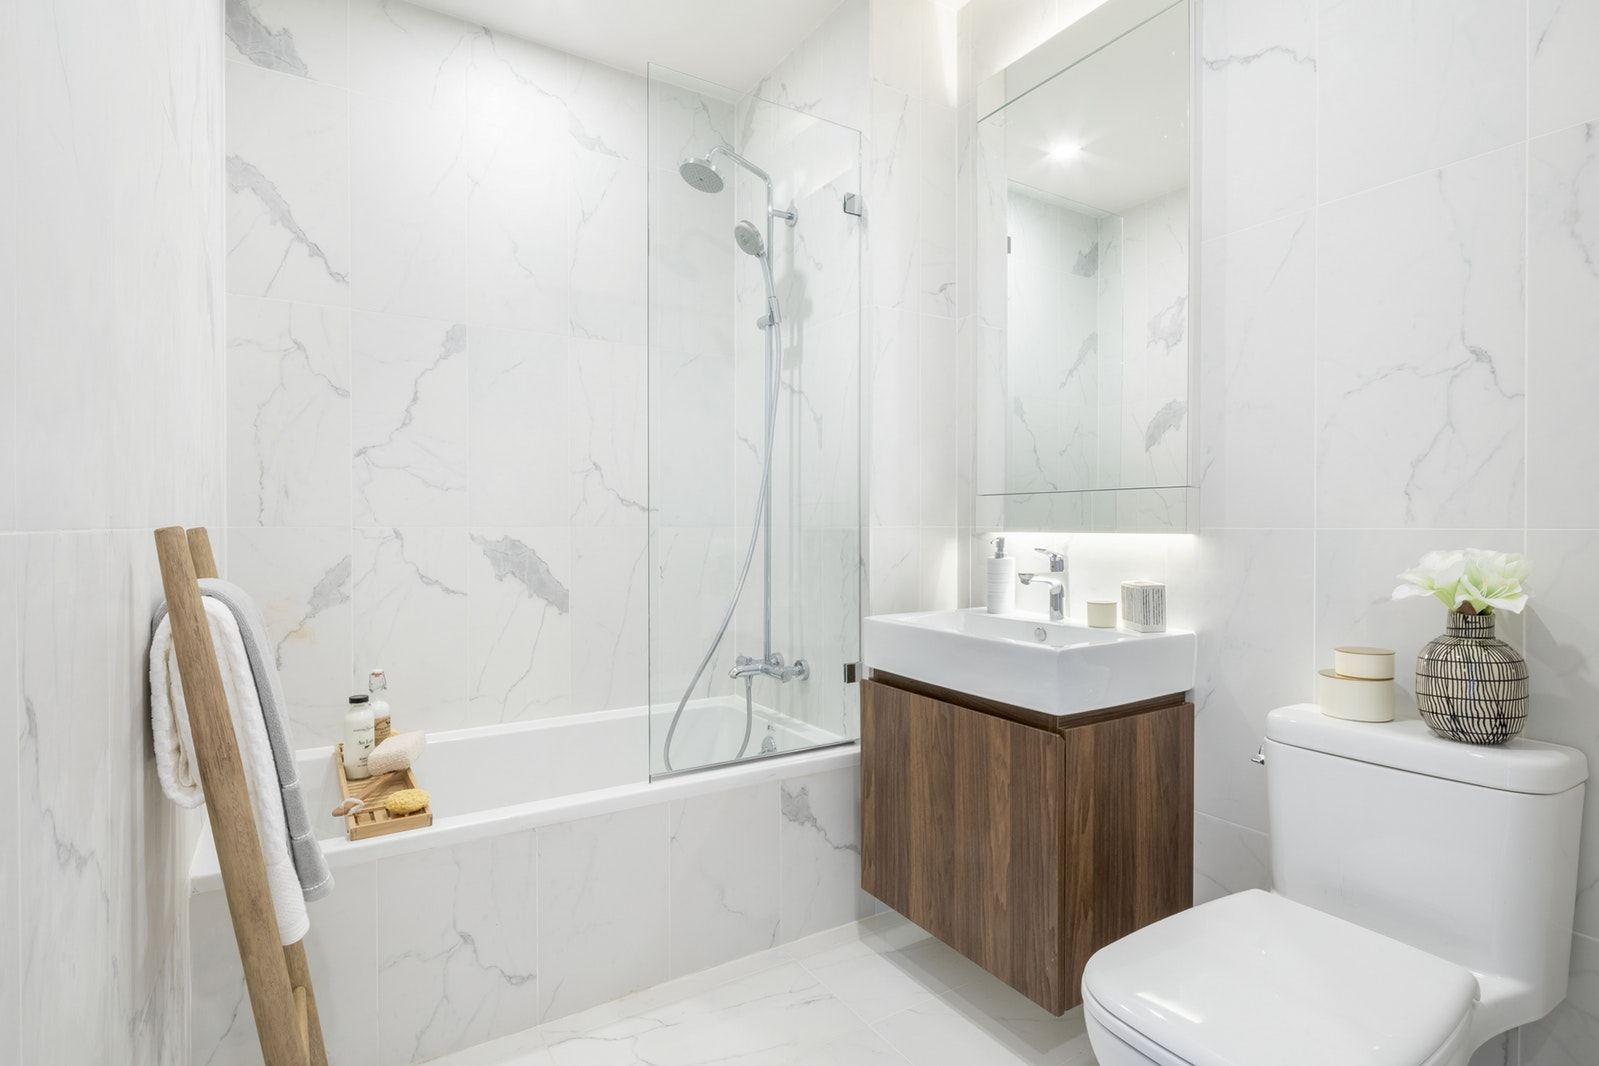 21 Powers Street 1b, Williamsburg, Brooklyn, NY, 11211, $1,299,000, Sold Property, Halstead Real Estate, Photo 5